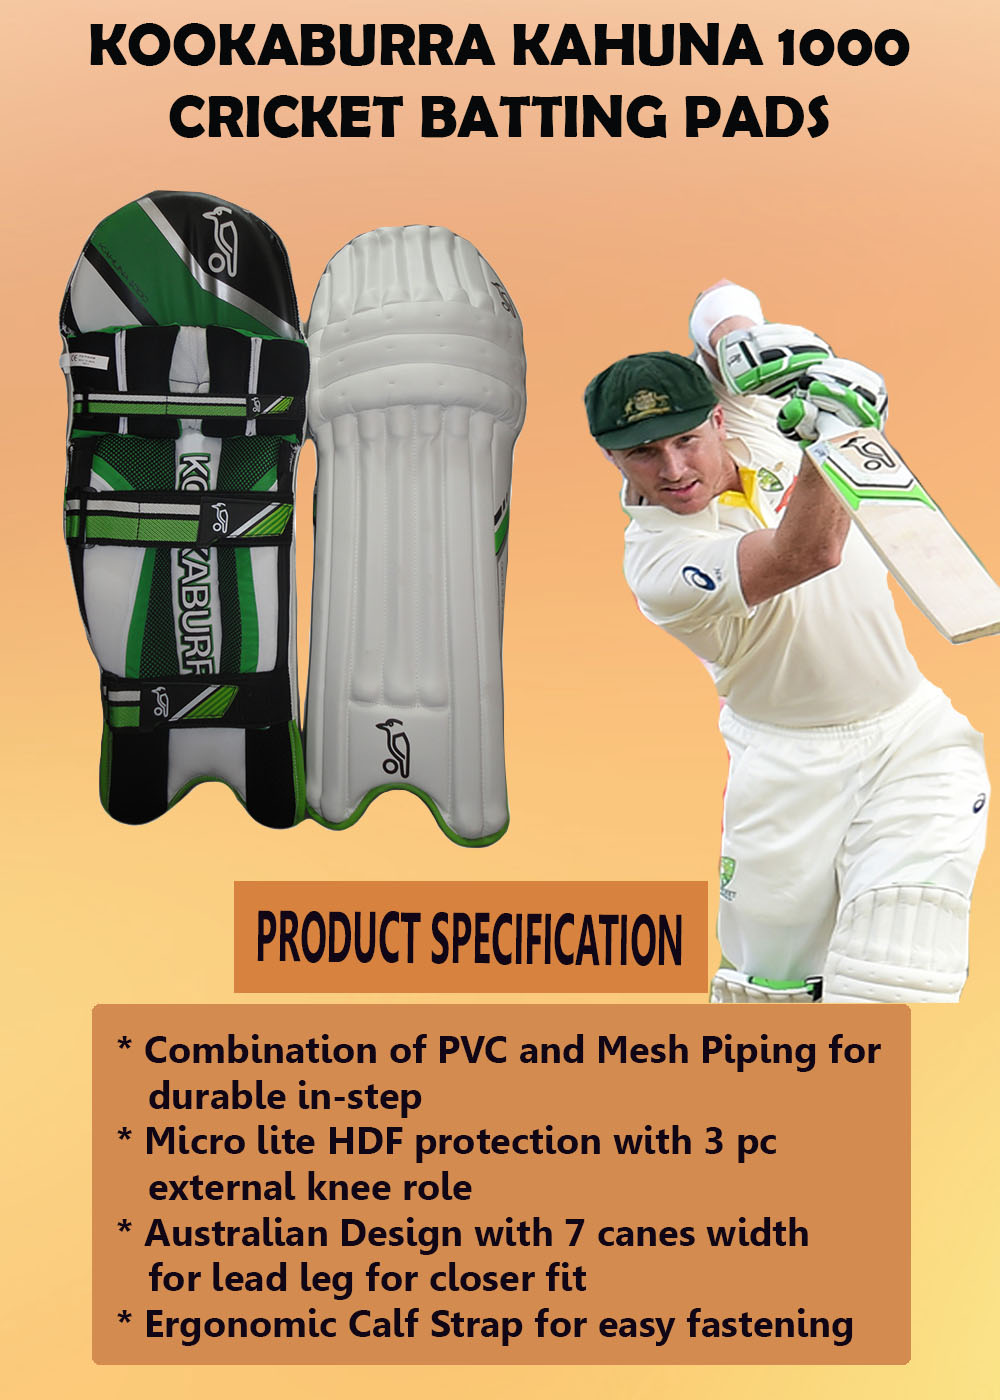 Kookaburra Kahuna 1000 cricket batting pads_2